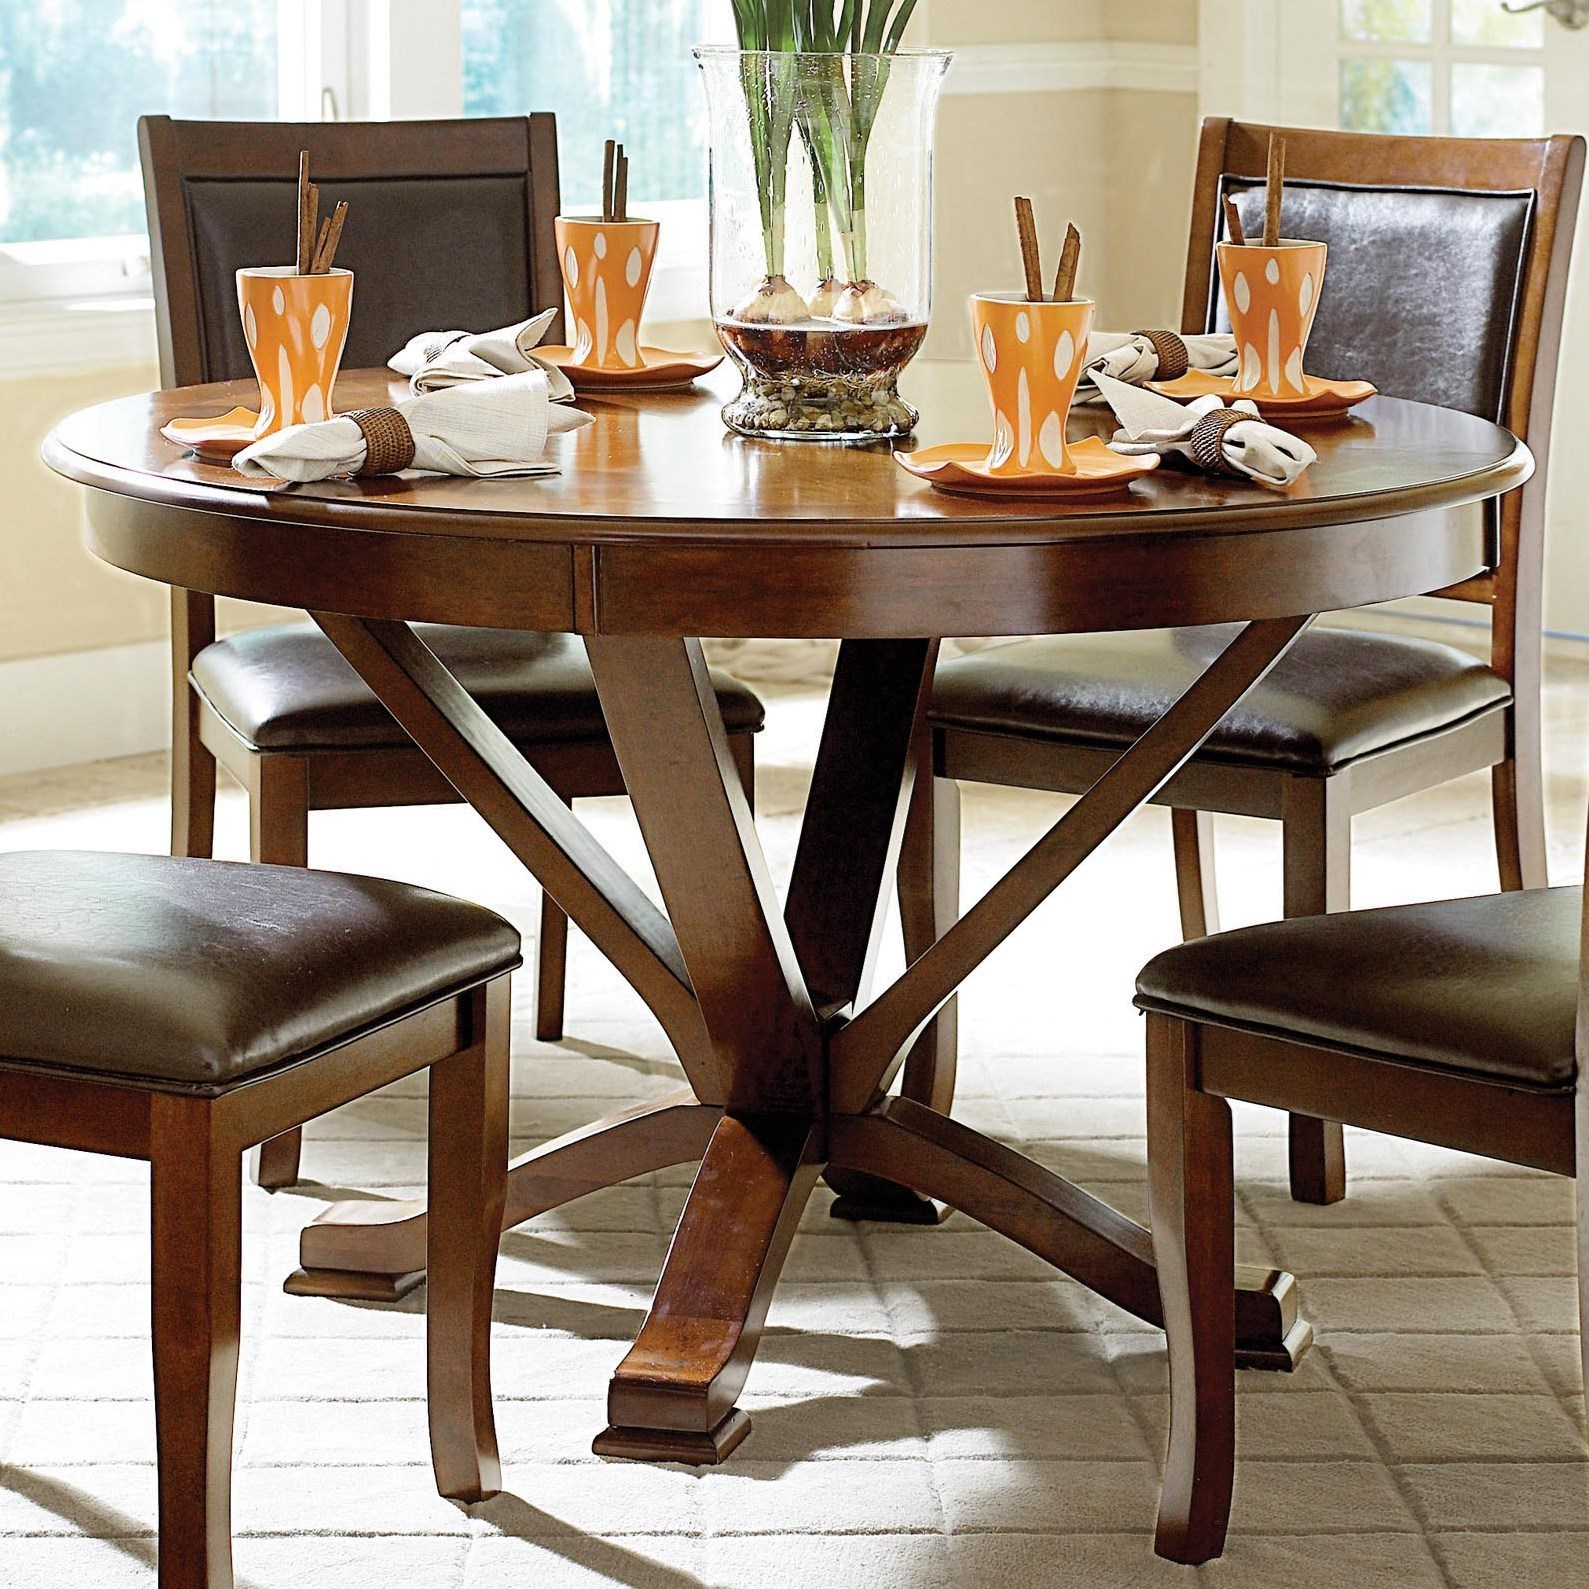 Round Kitchen Tables: Homelegance Helena Transitional Round Kitchen Table With